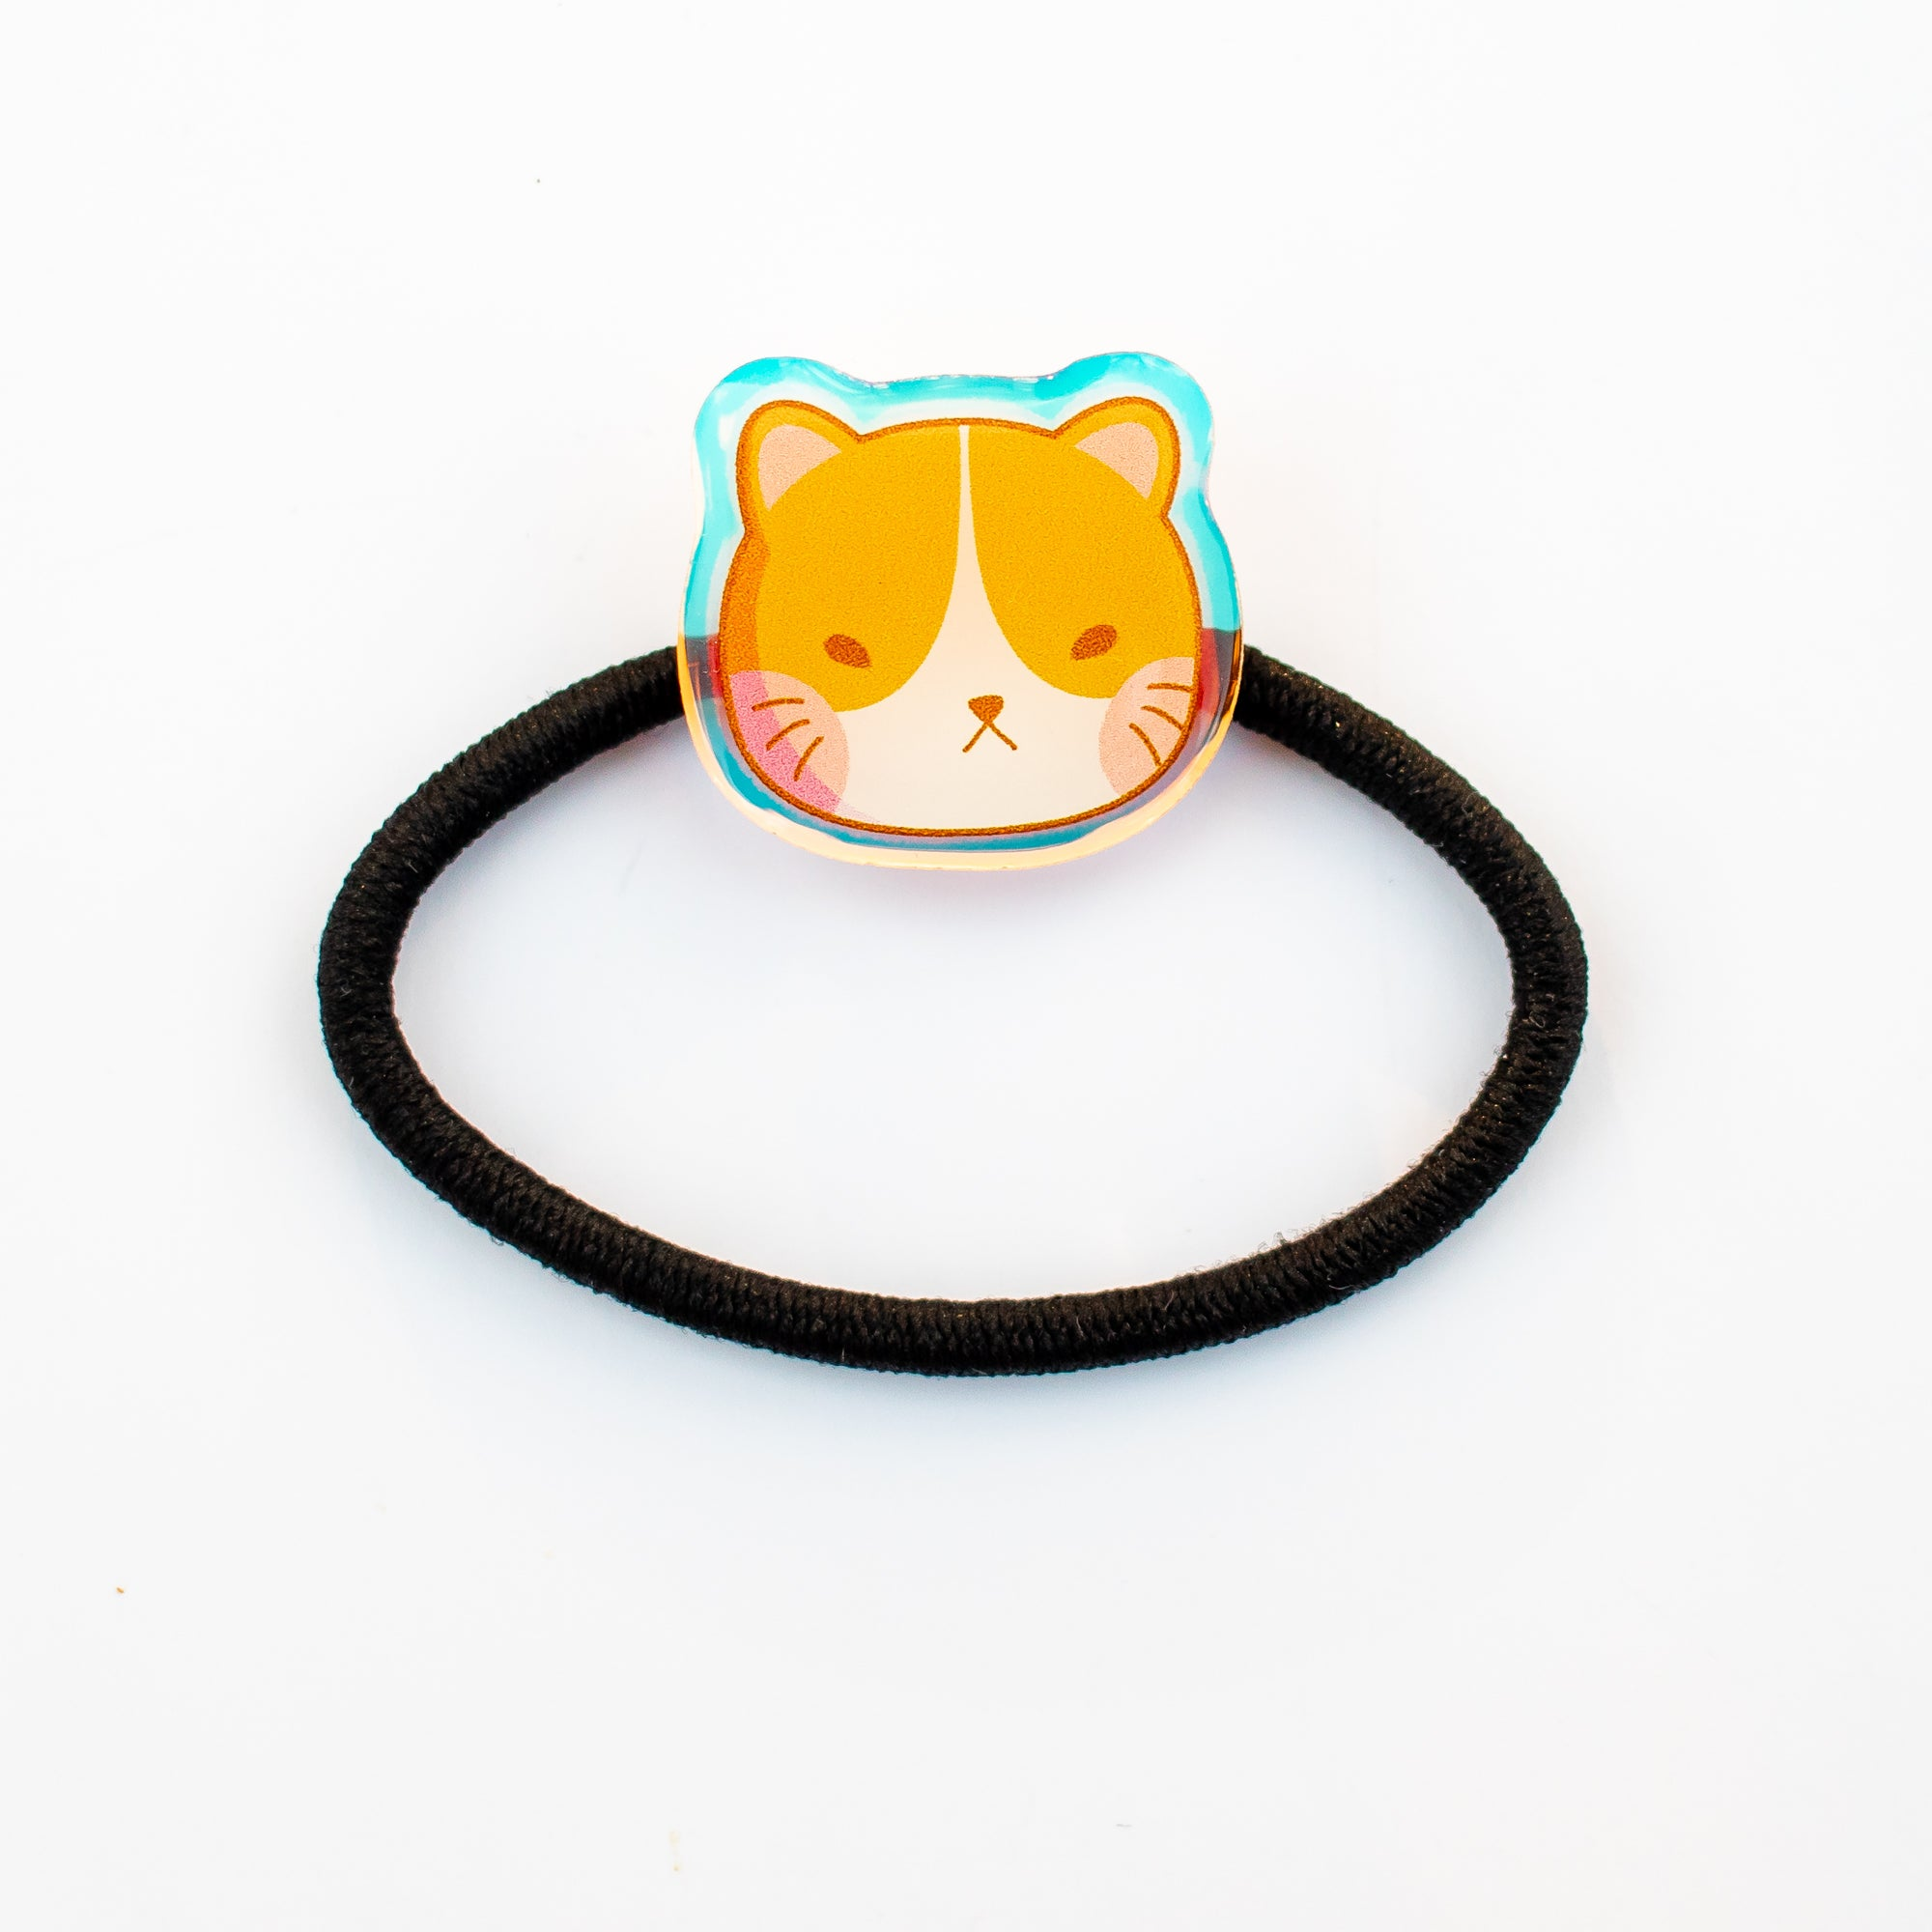 [SECONDS SALE] KIN Hair Tie